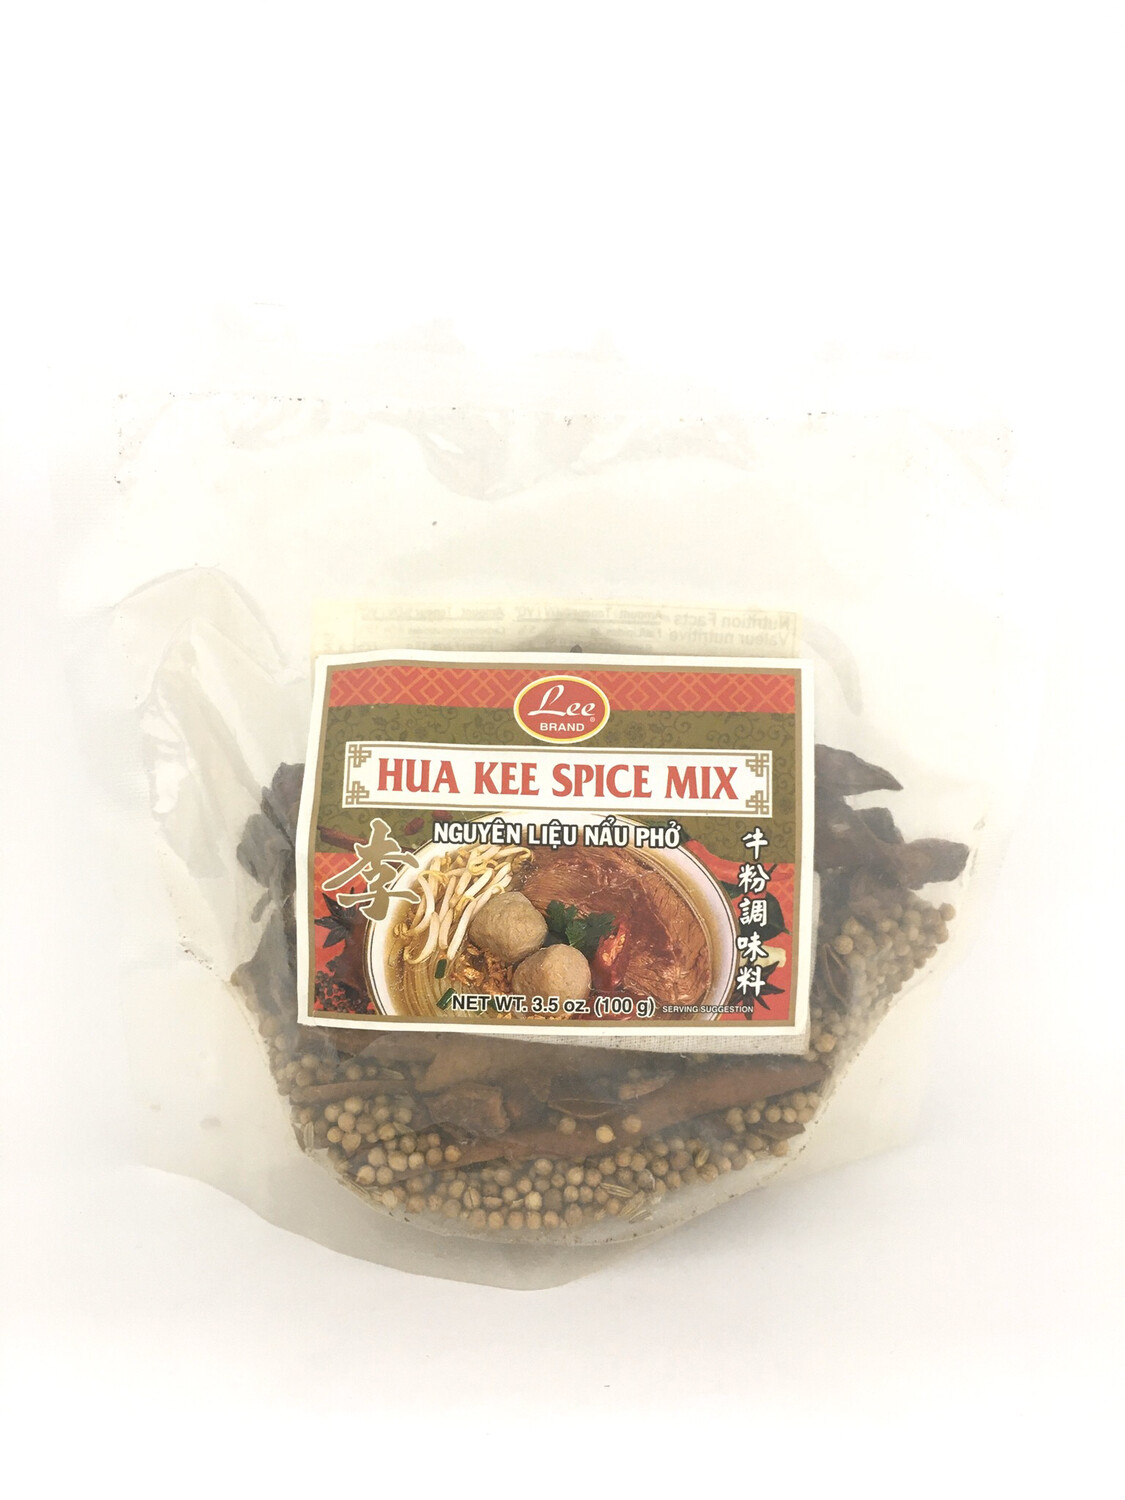 LEE HUA KEE SPICE MIX 48X100G